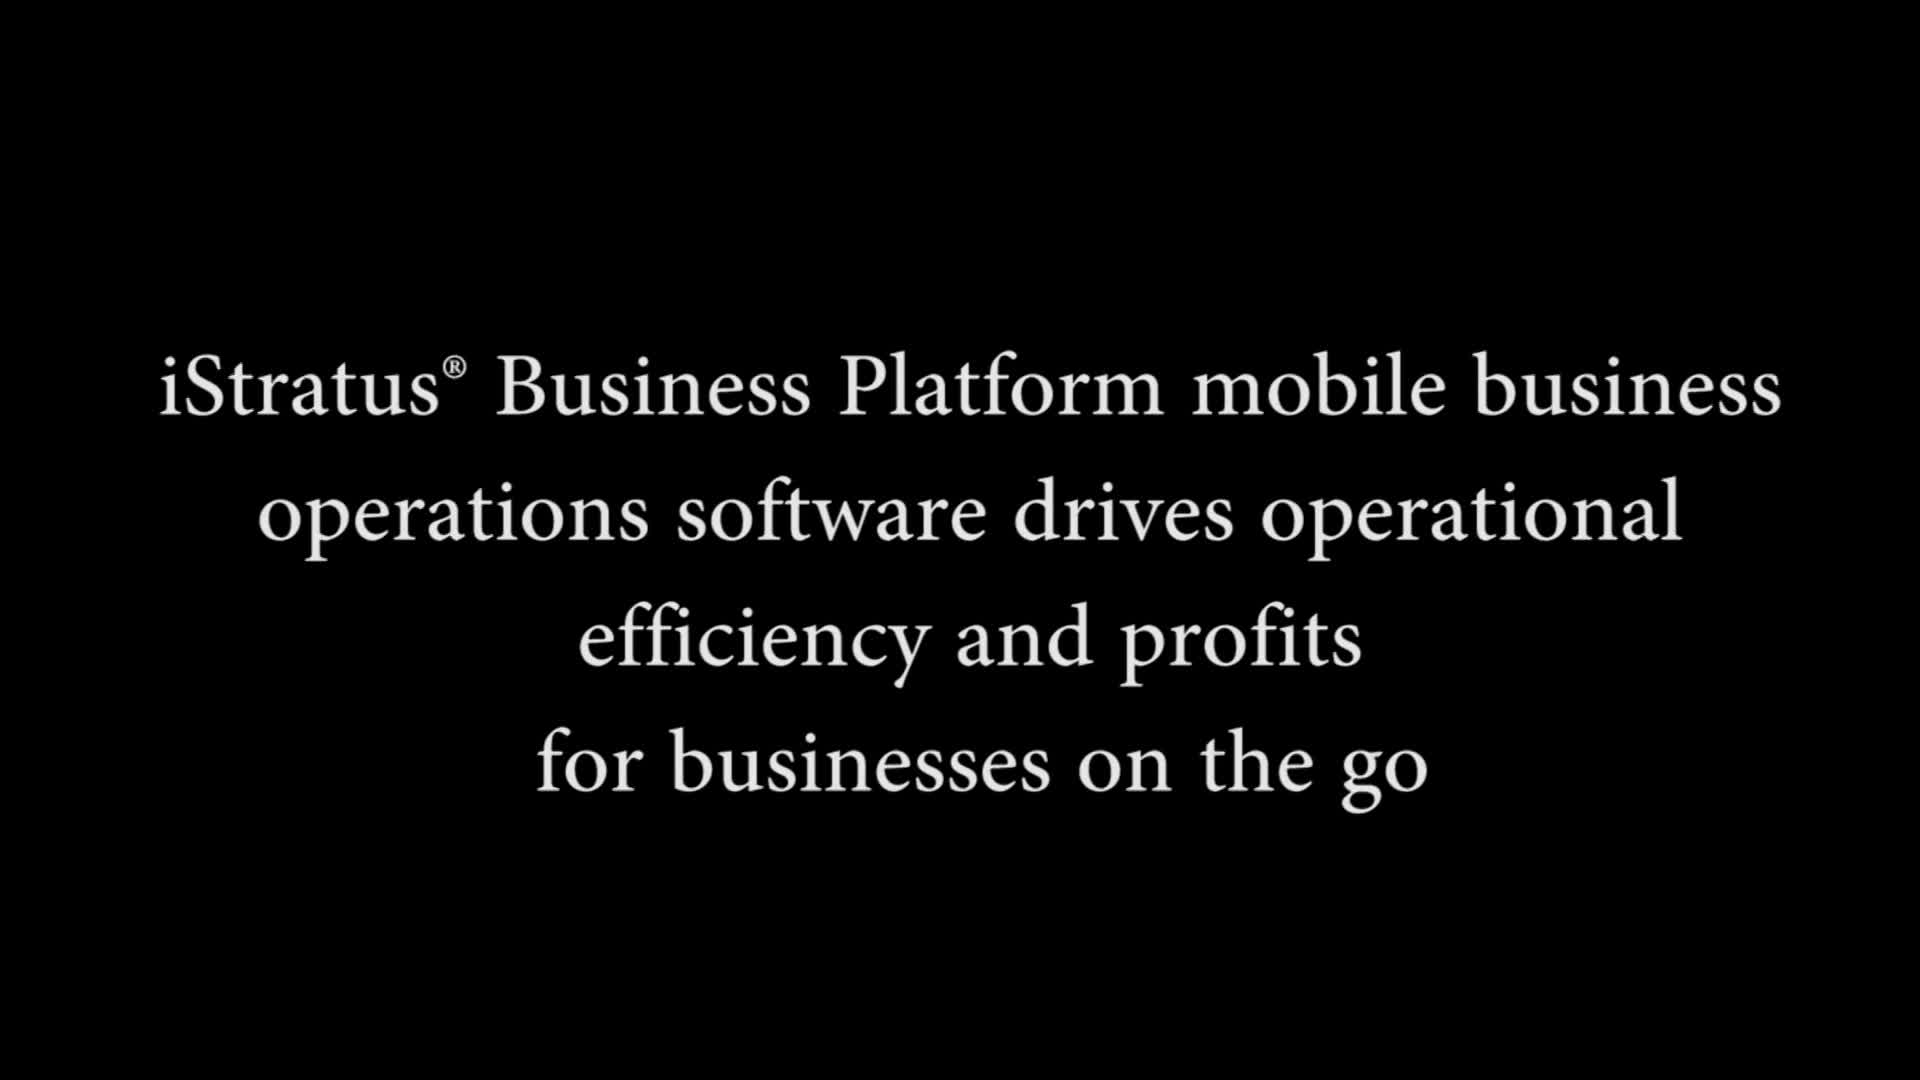 iStratus Business Platform: Enabling a new wave of mobile business products to be developed and delivered affordably, bypassing the need for expensive enterprise software.